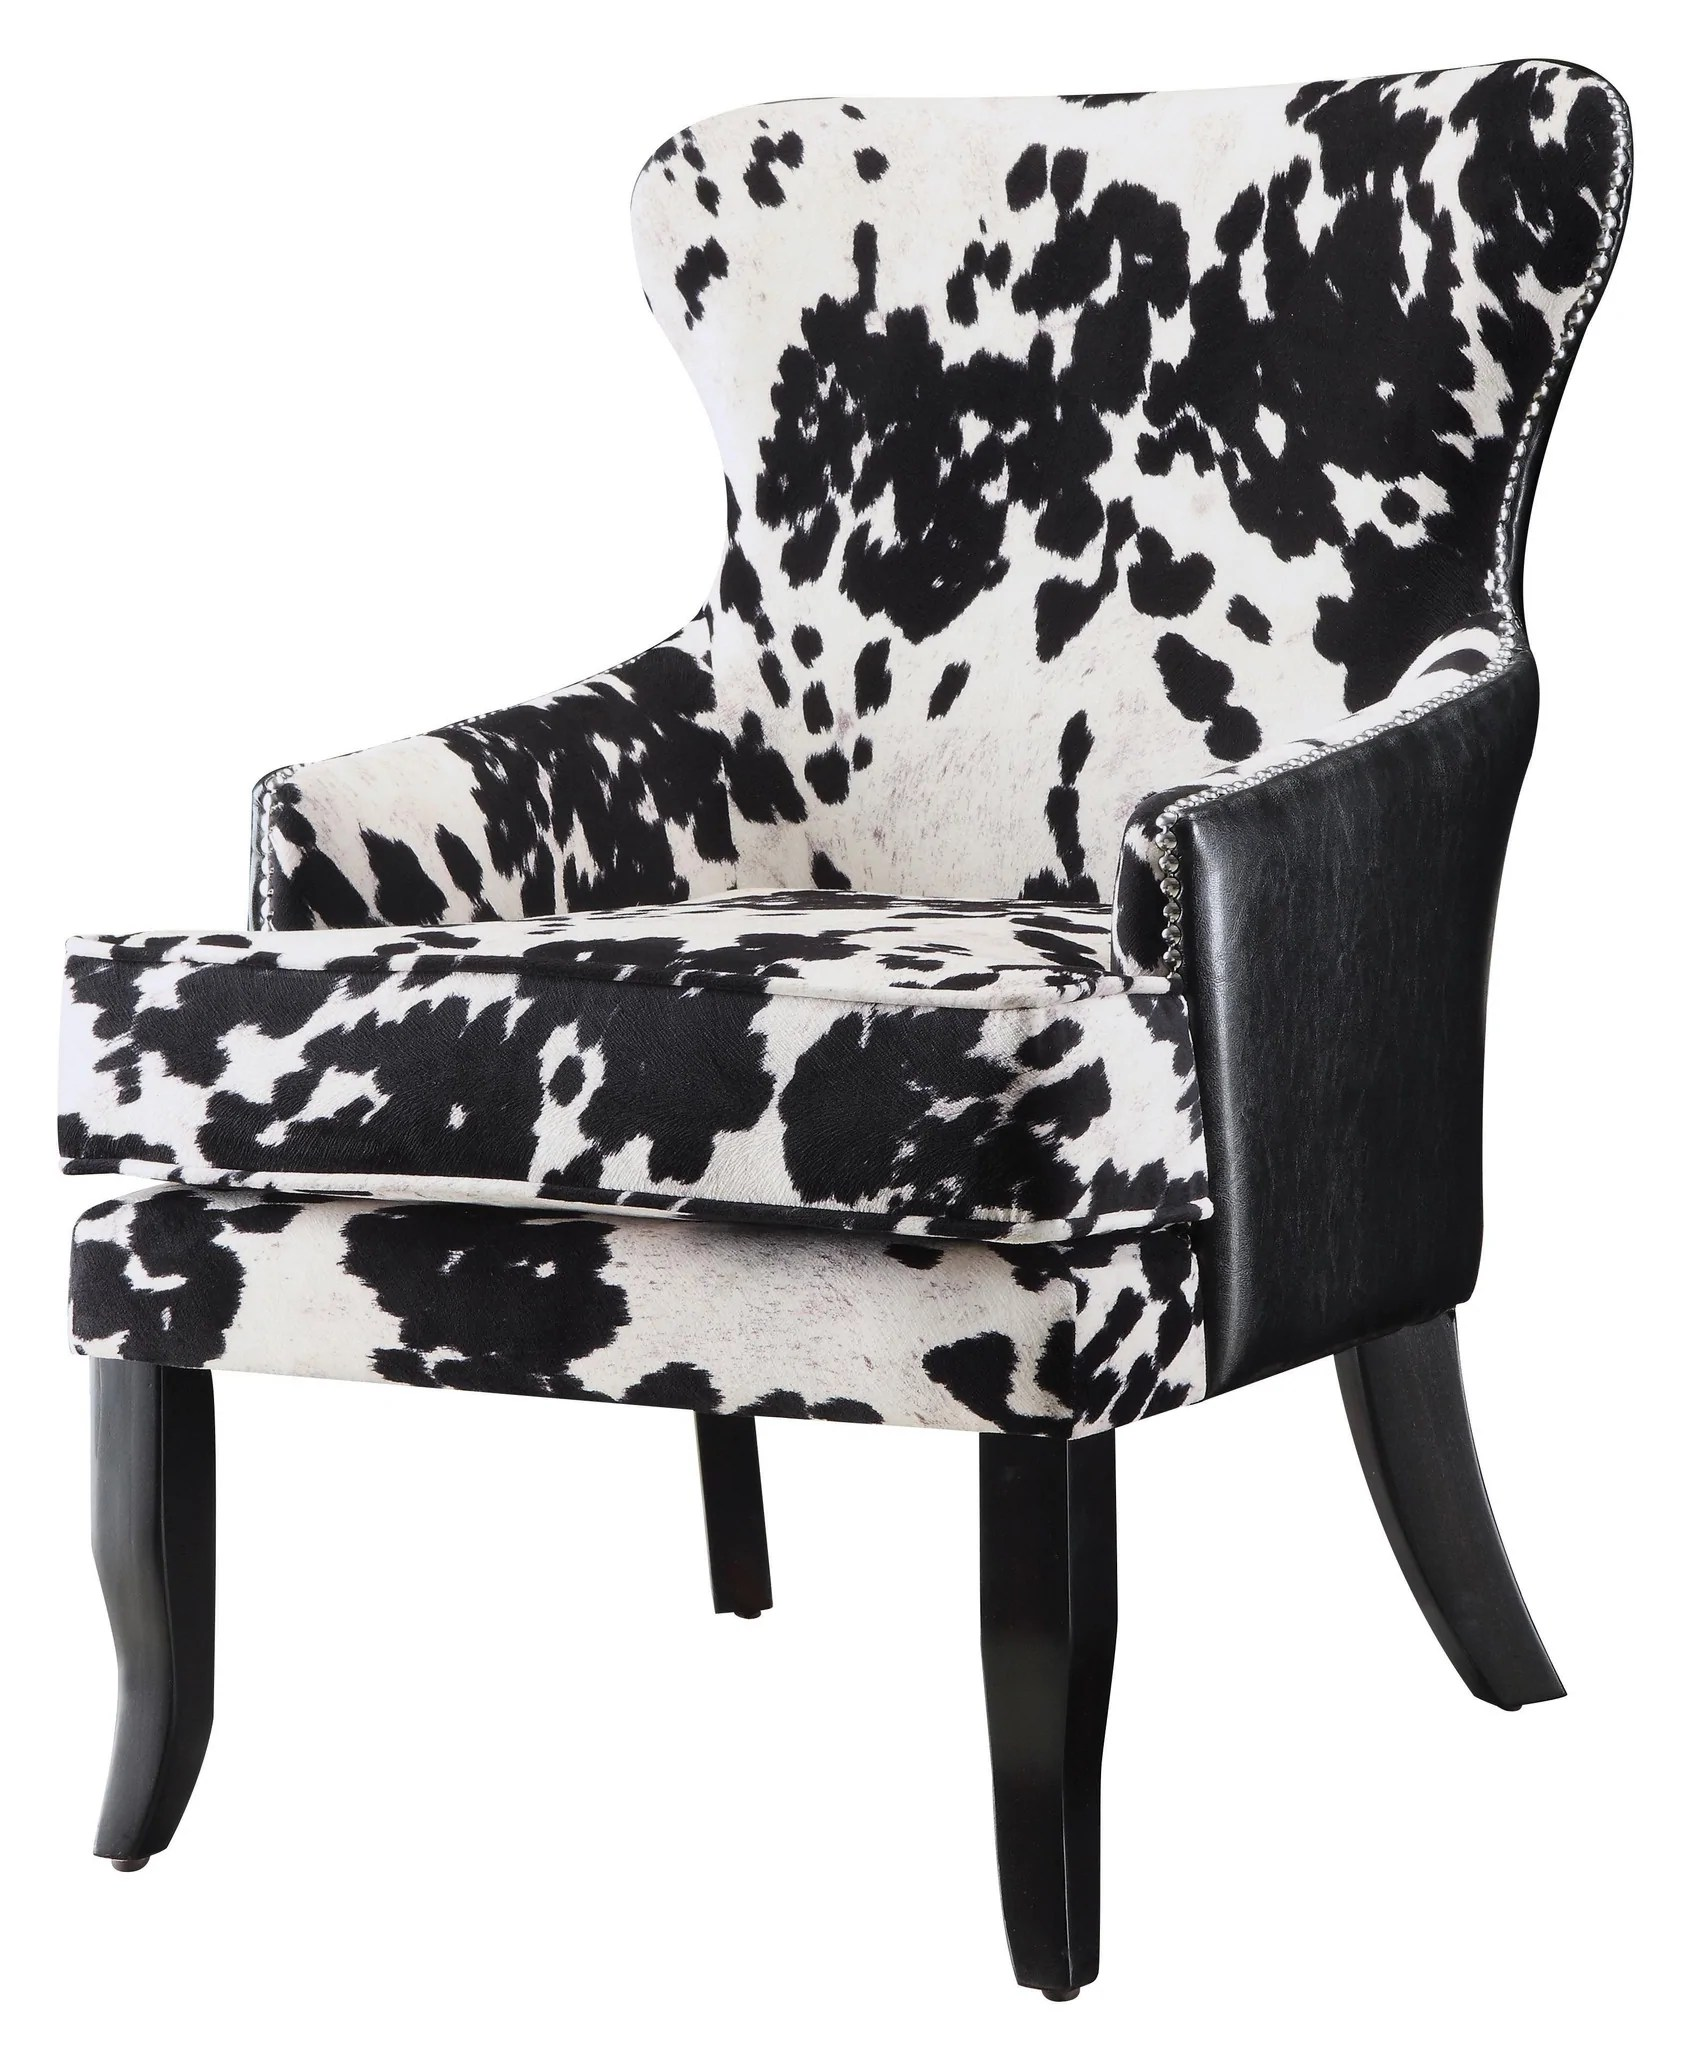 cow print chair covers ebay uk mooey modern black and white